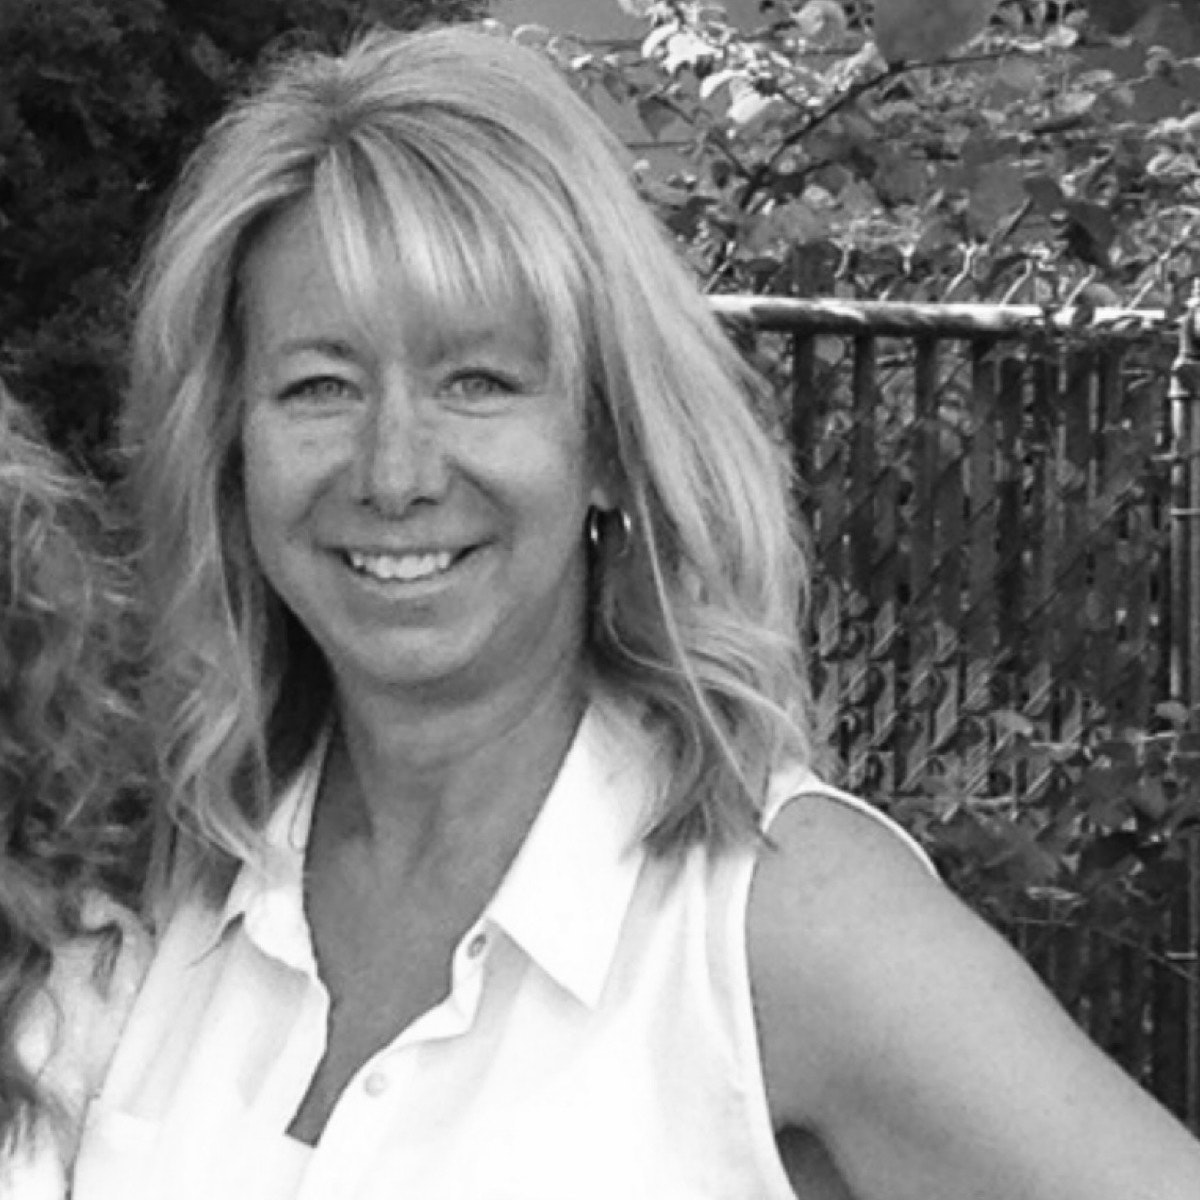 Shelley's dog day care